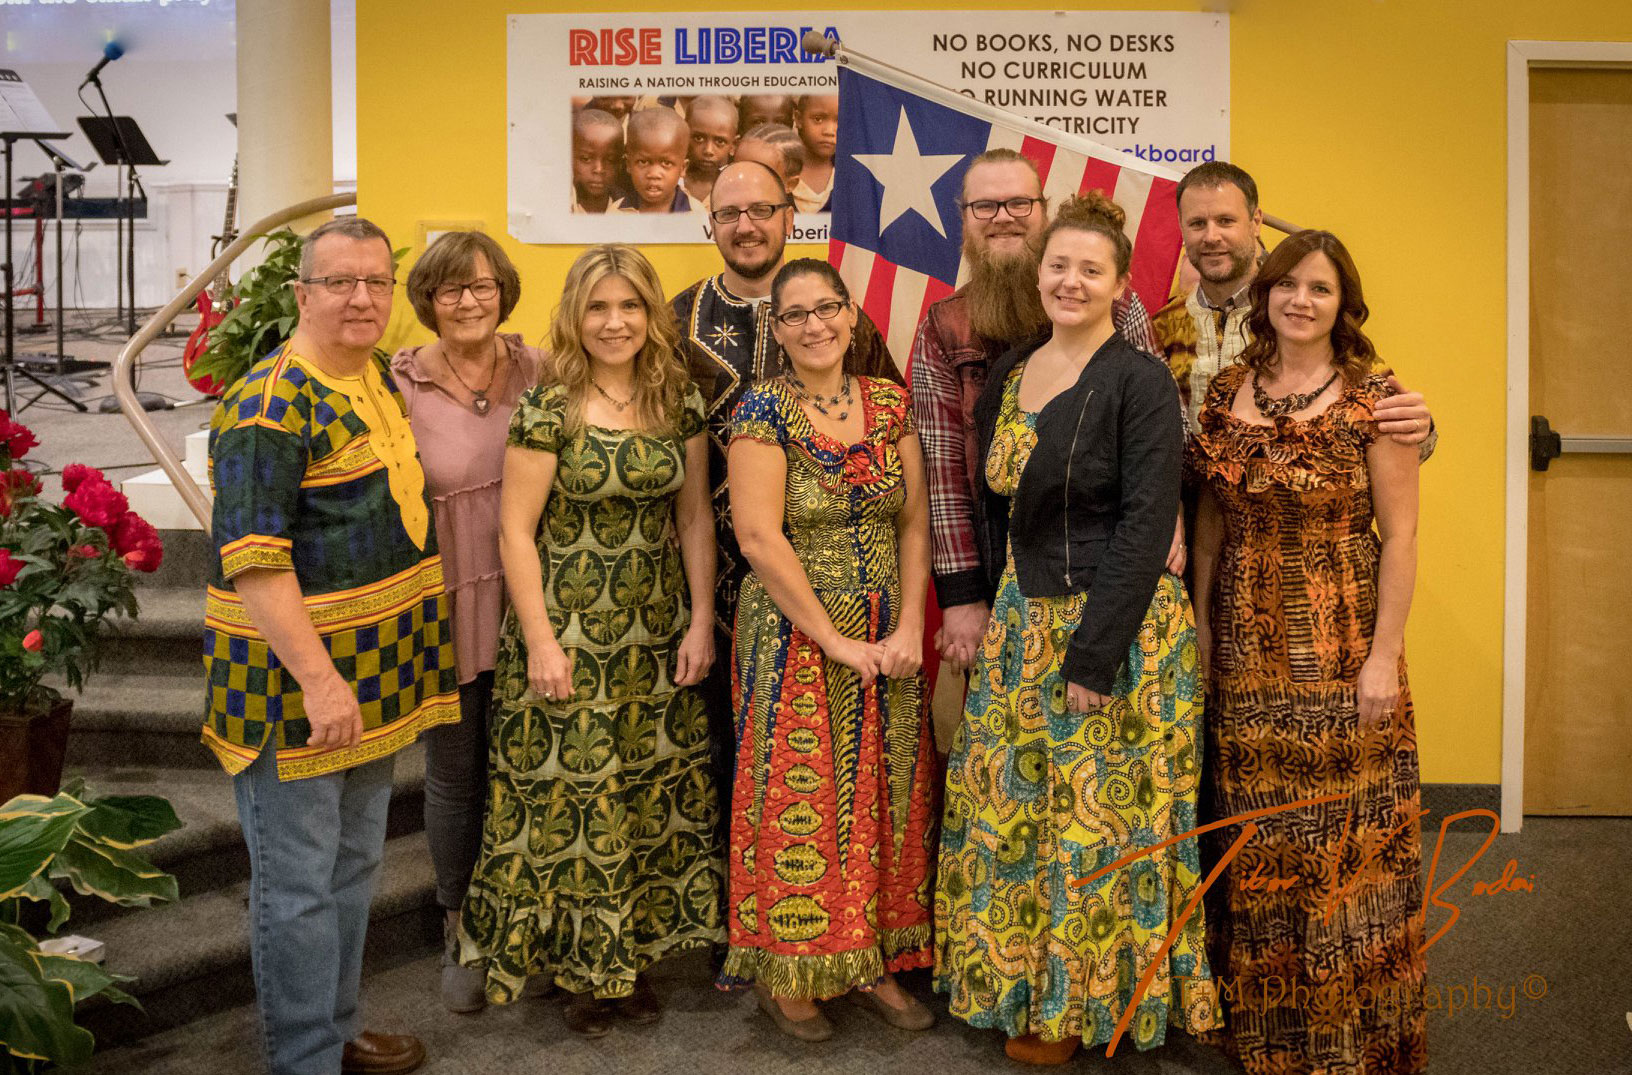 Oversight Team in New York at the Rise Liberia Launch